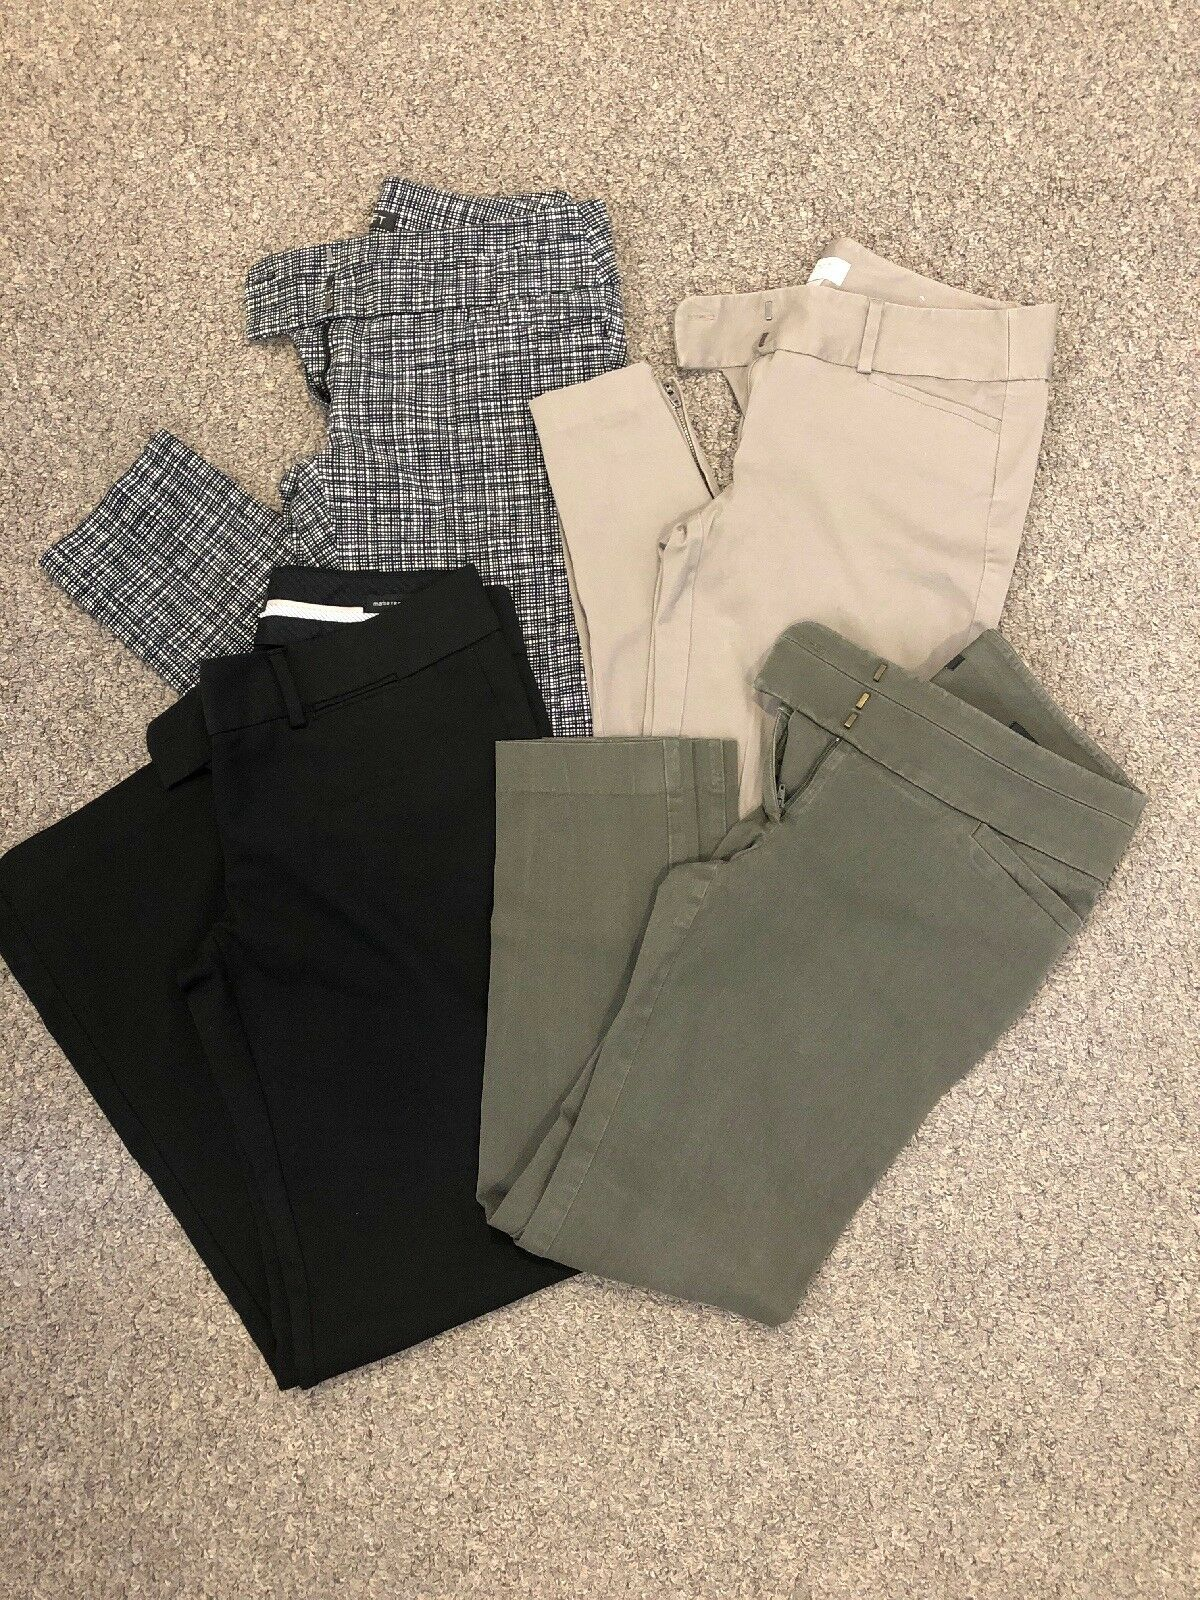 73bfec2978bc1 Lot Of 4 Pair Of Ann Taylor Loft Pants Pants Pants Size 2 And 4 5d8480